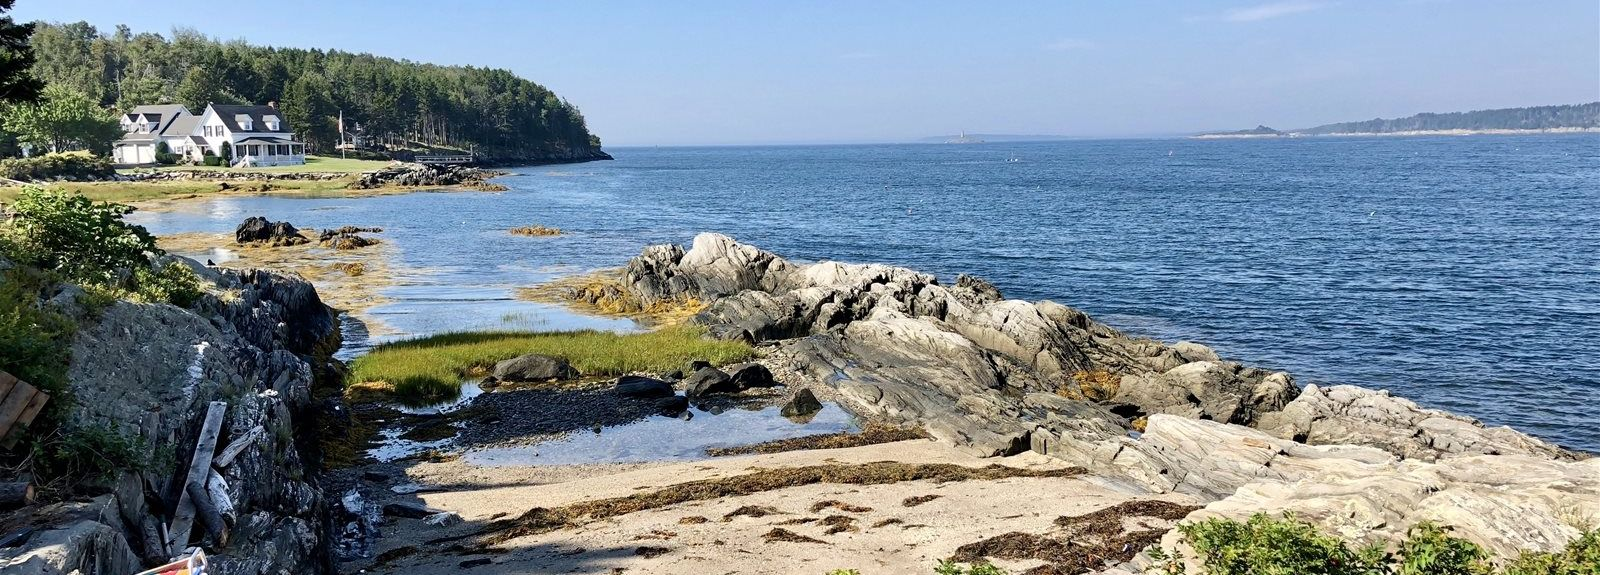 Sebasco, Phippsburg, Maine, United States of America